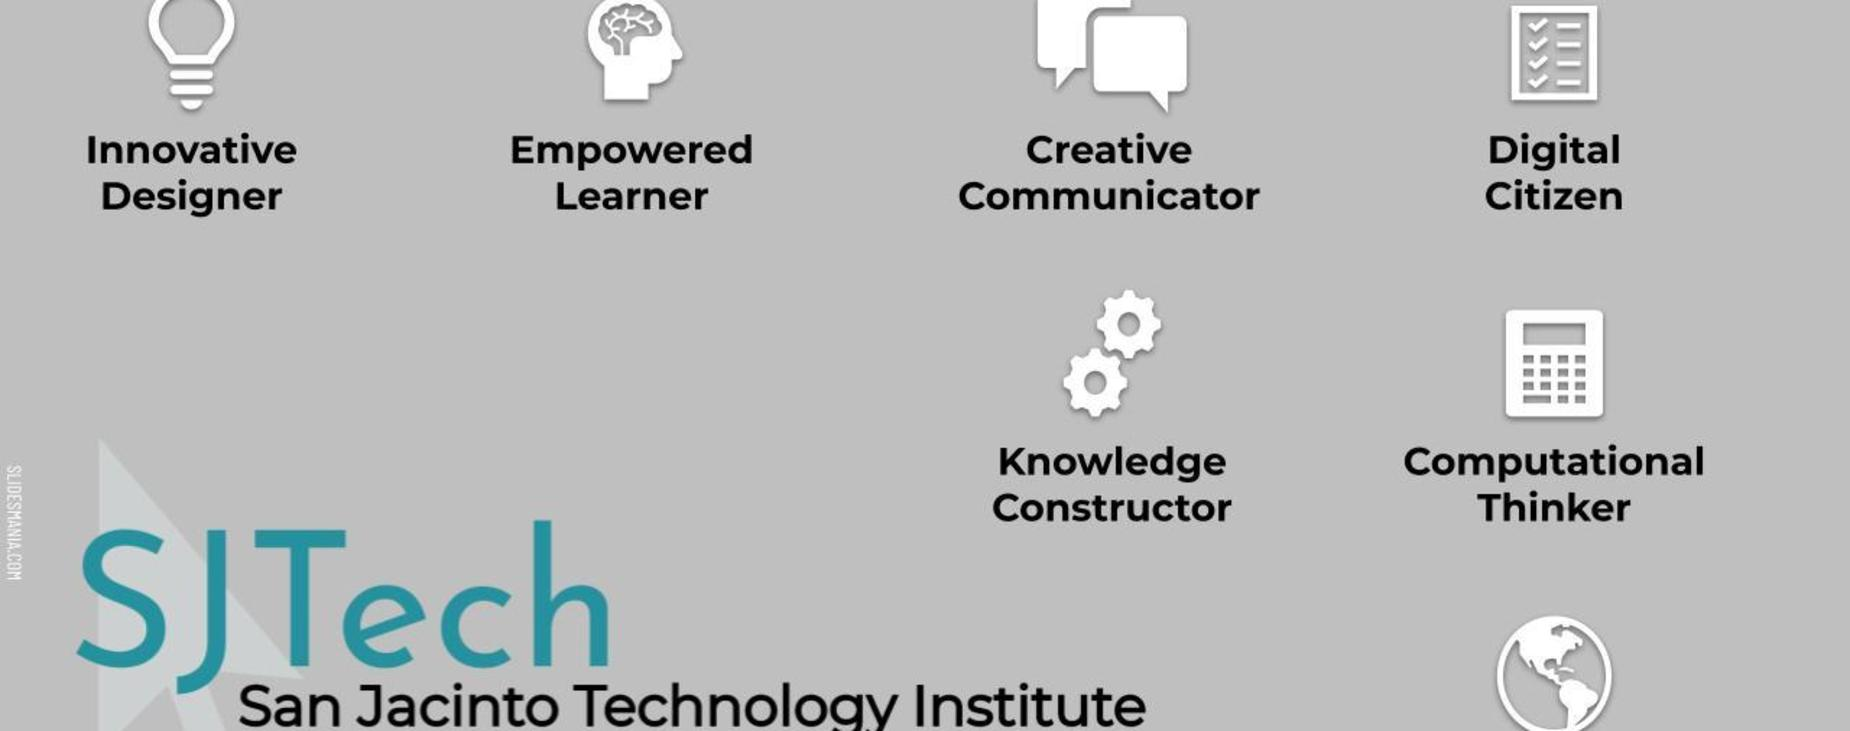 SJTech students are innovative designers, empowered learners, creative communicators, digital citizens, knowledge constructors, computational thinkers, and global collaborators